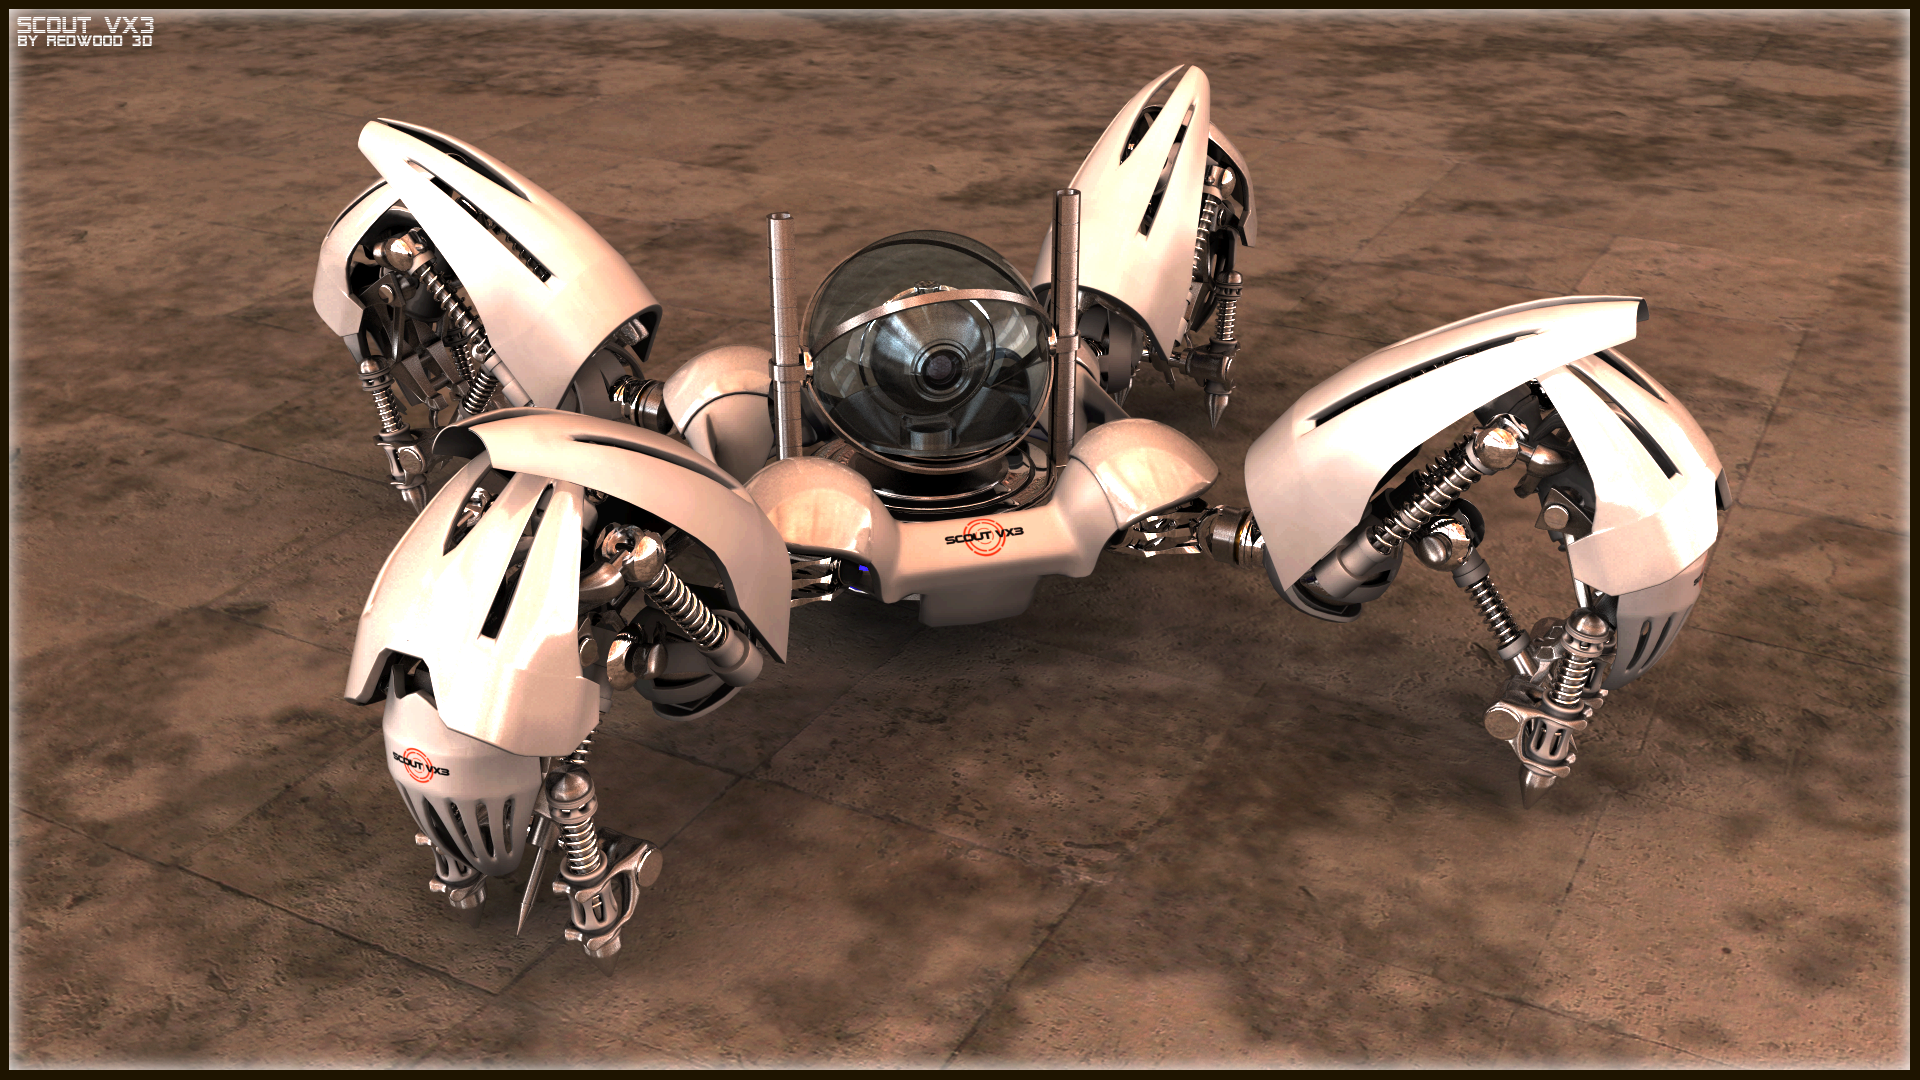 Scout VX3 Recon Bot II by REDWOOD3D